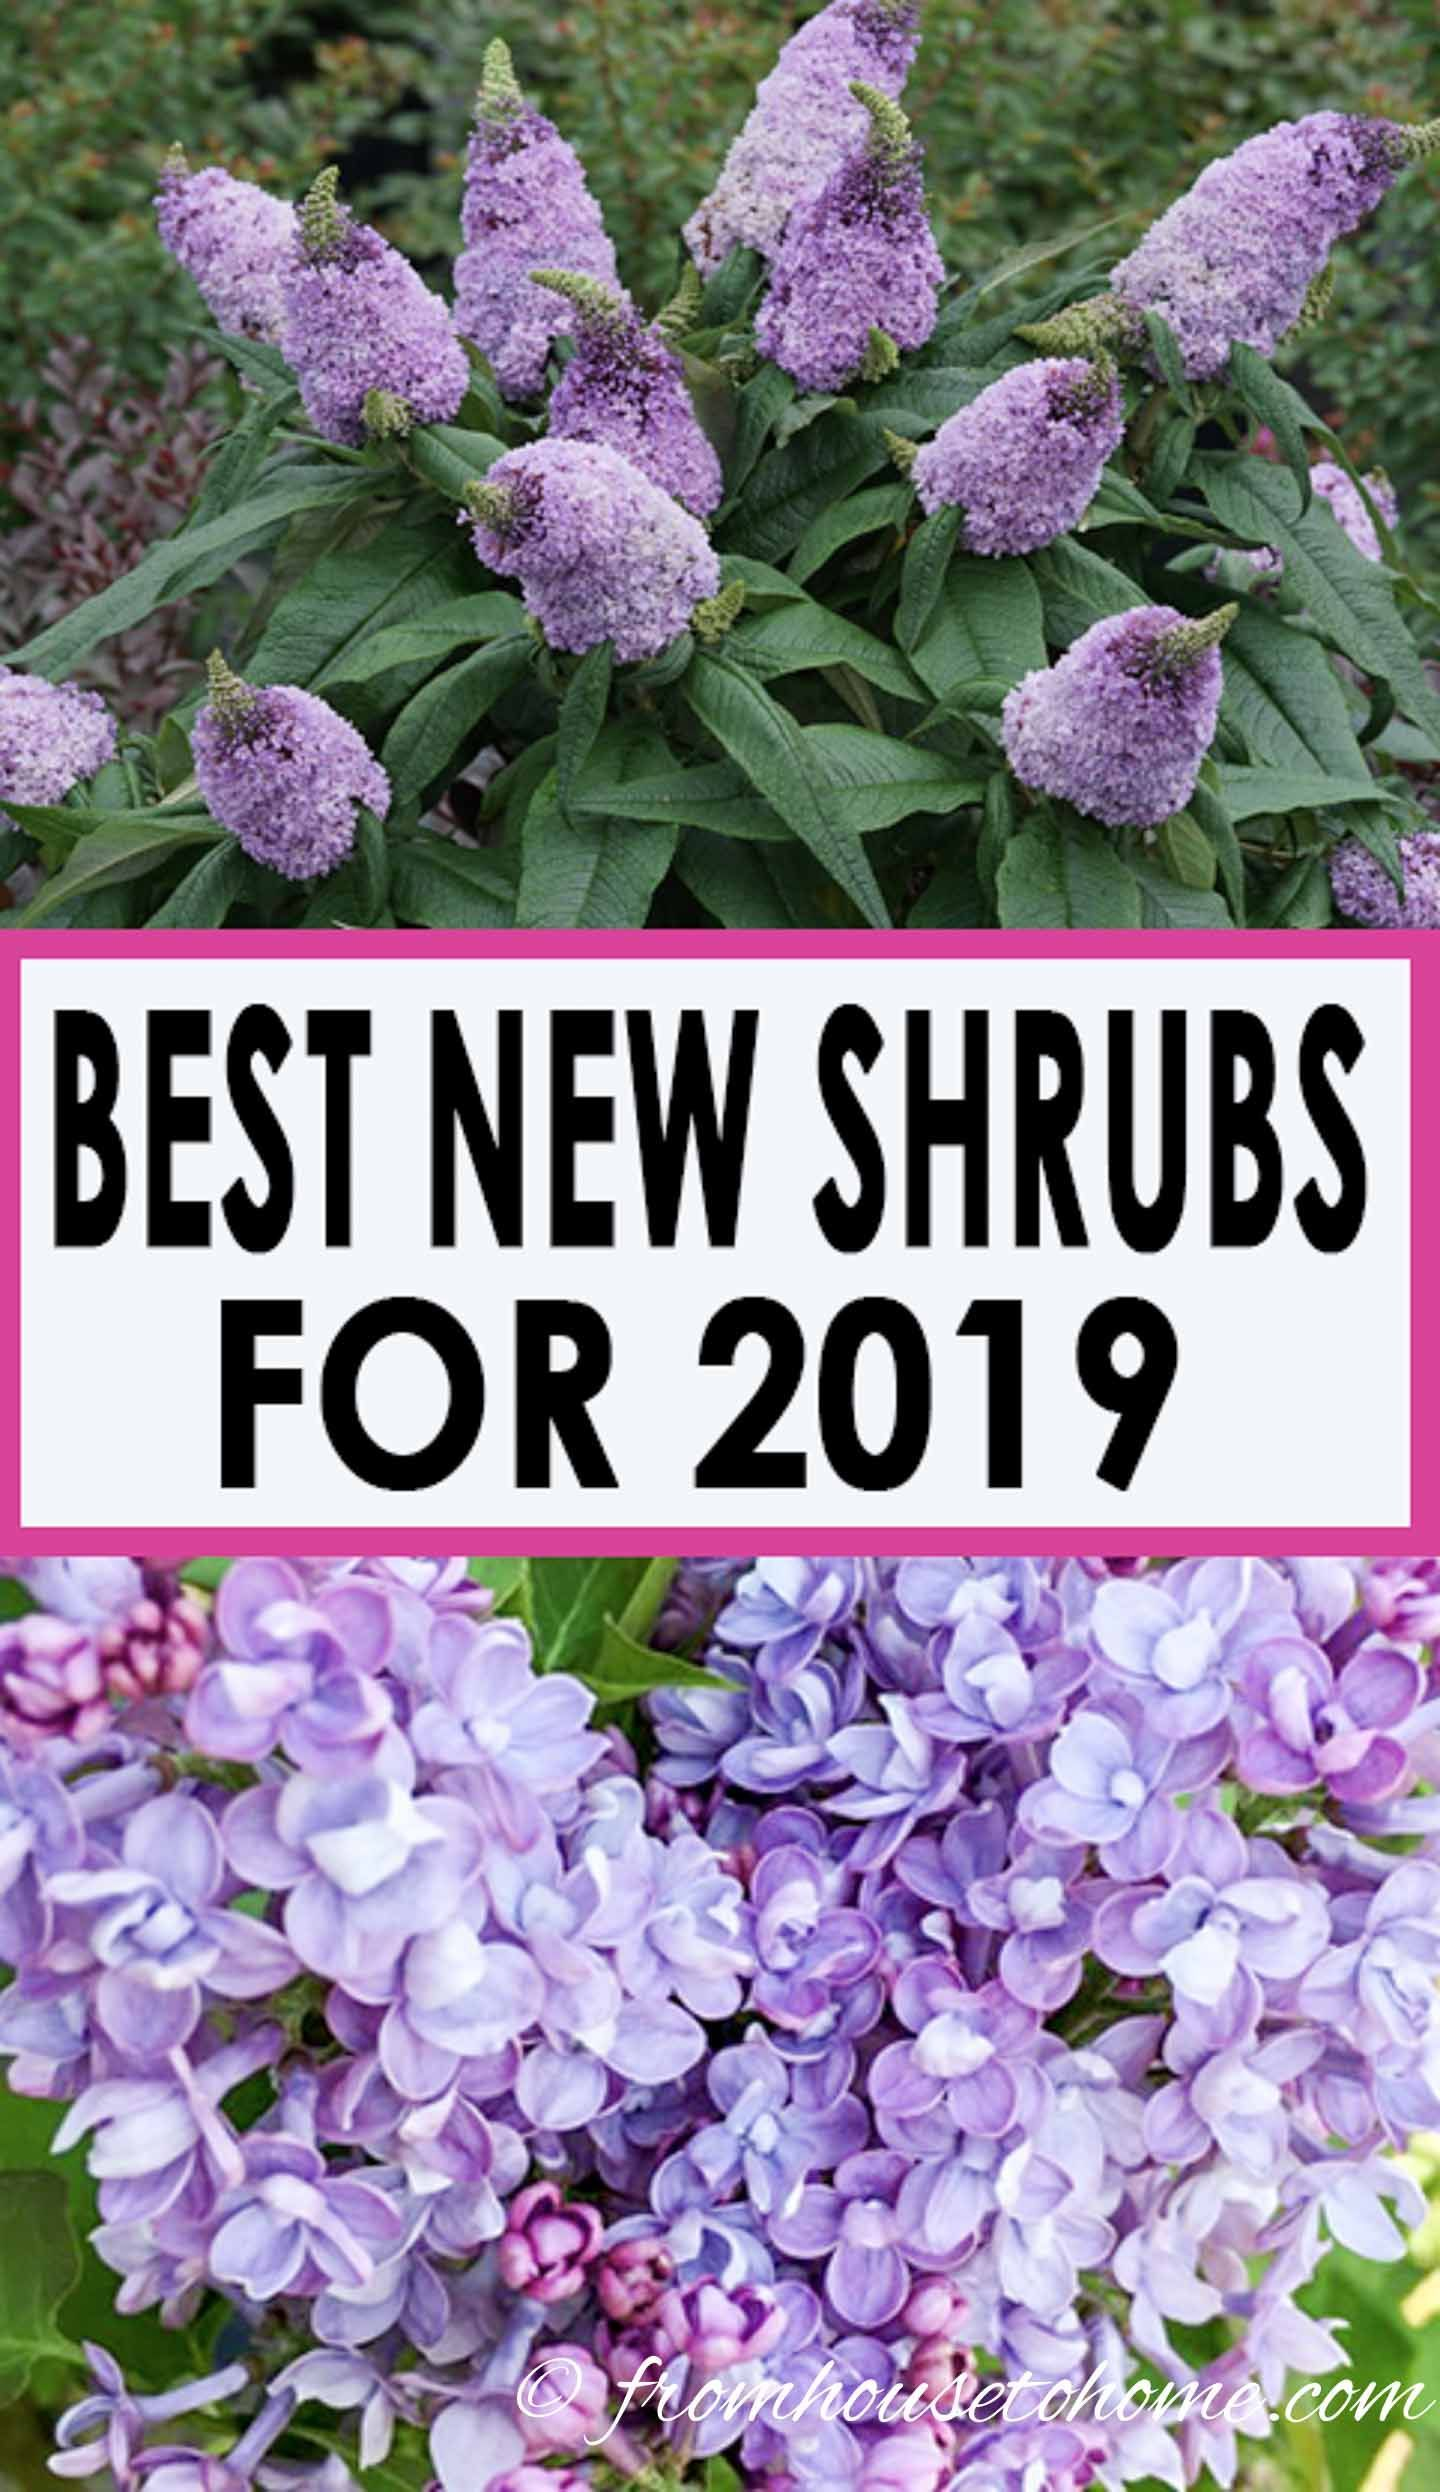 New 2019 Perennials Shrubs The Best New Plants For 2019 Gardening From House To Home Part Shade Perennials Perennial Shrubs Garden Shrubs